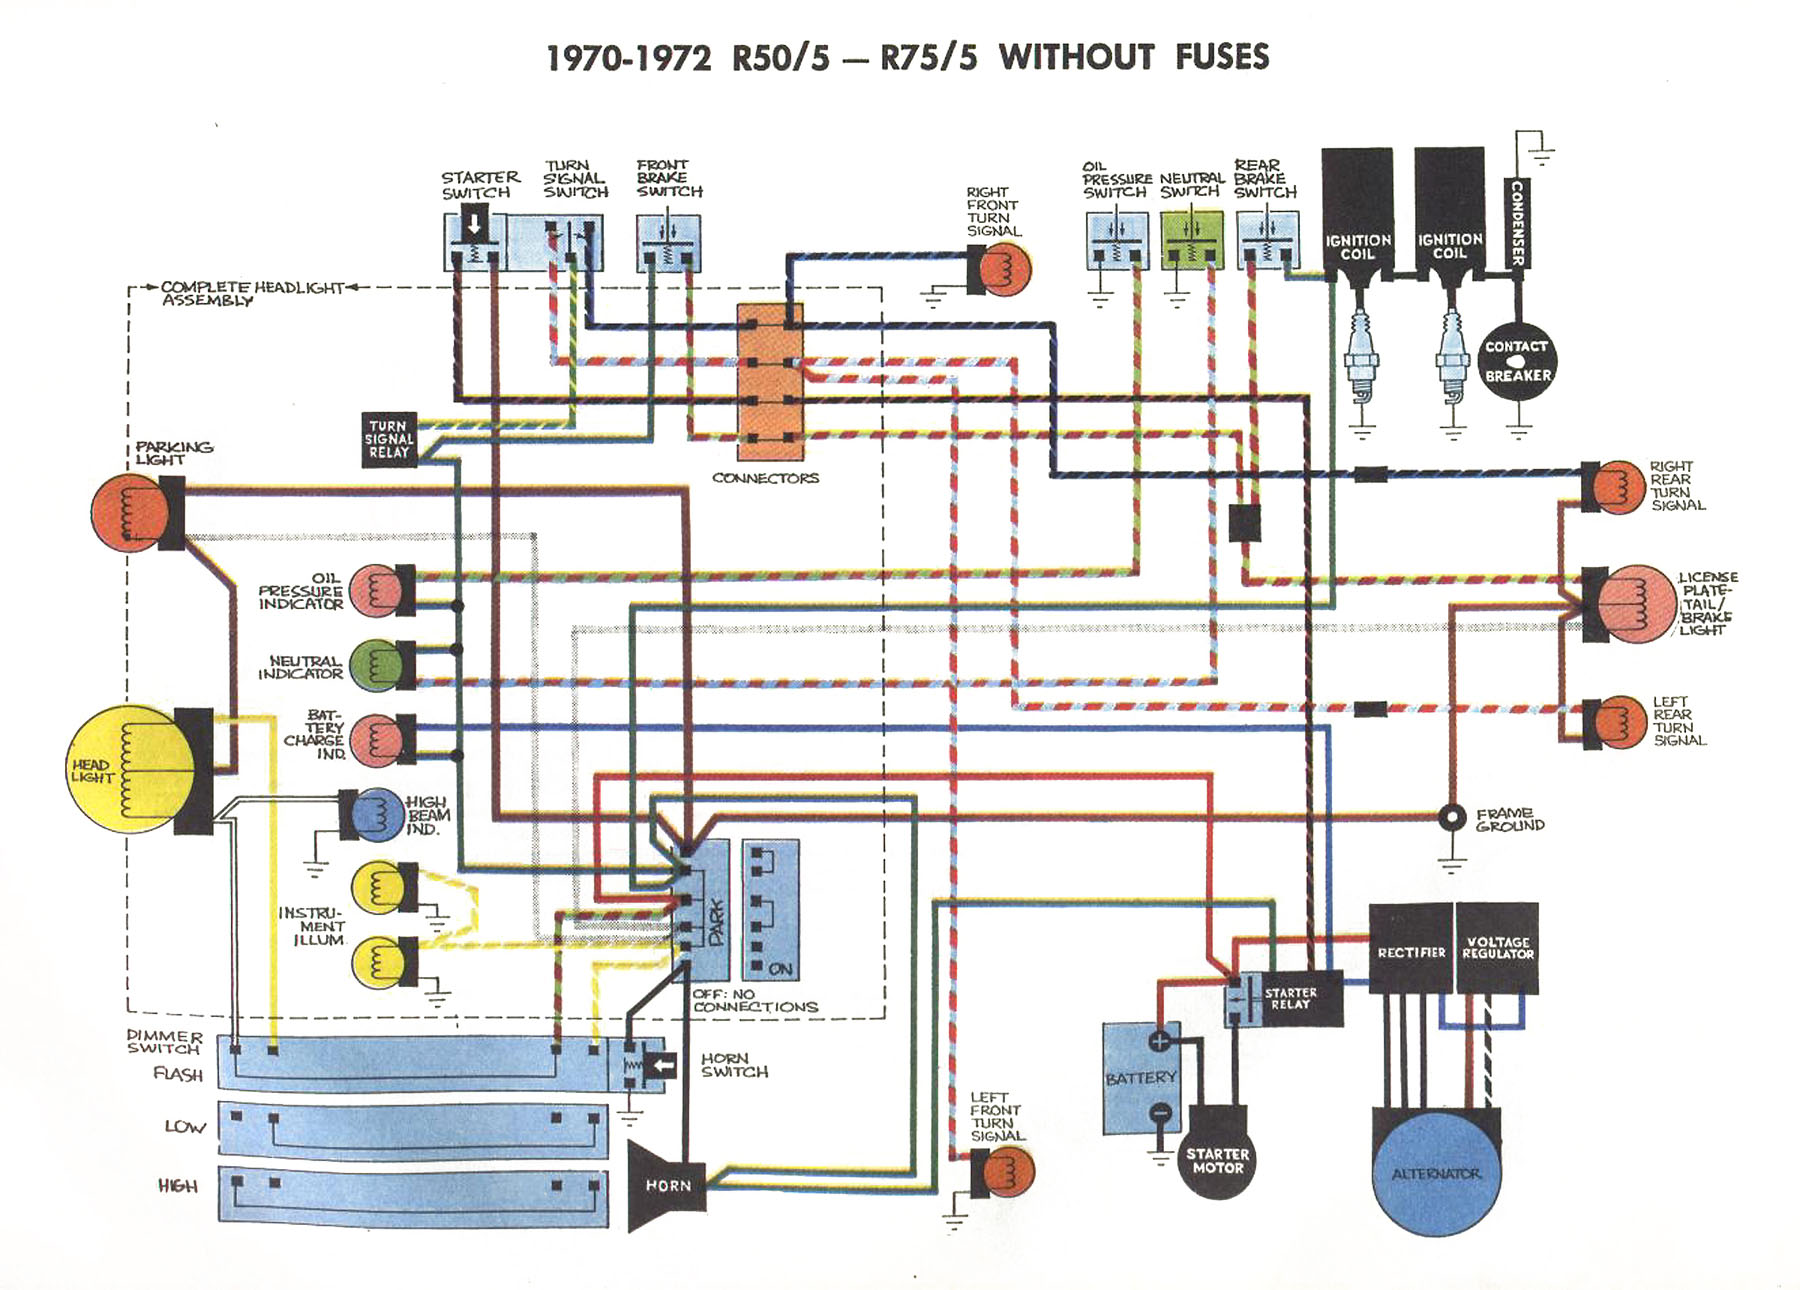 R50 Wiring Diagram Bmwminiu Library 1974 Isuzu Diagrams For Free Without Fuses Schematic